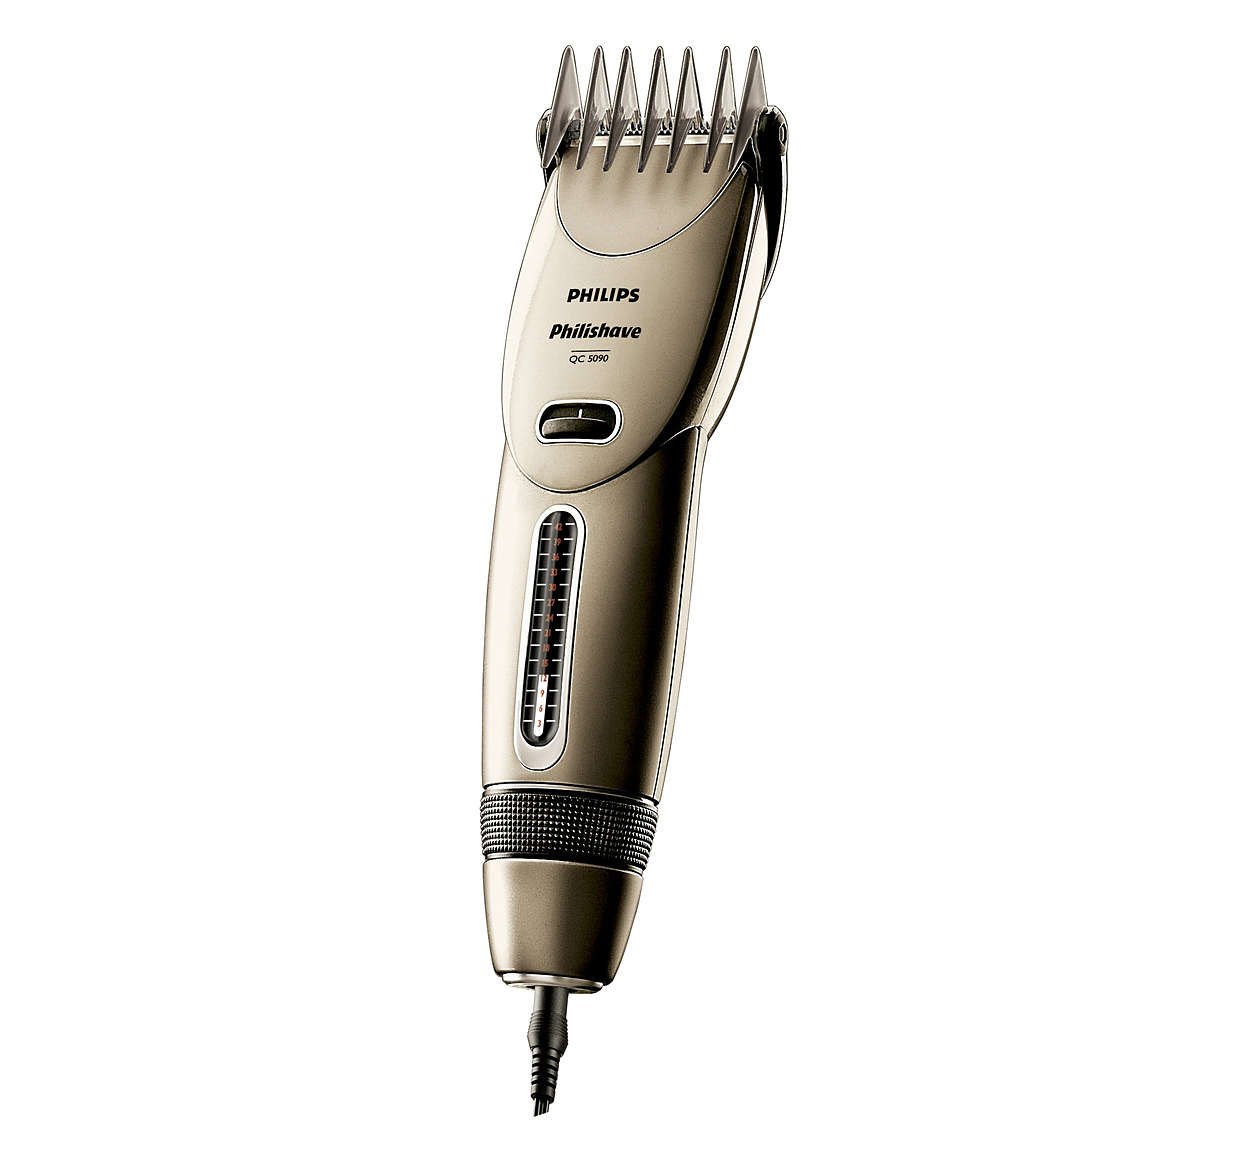 hairclipper series 1000 tondeuse cheveux super easy qc5090 00 philips. Black Bedroom Furniture Sets. Home Design Ideas